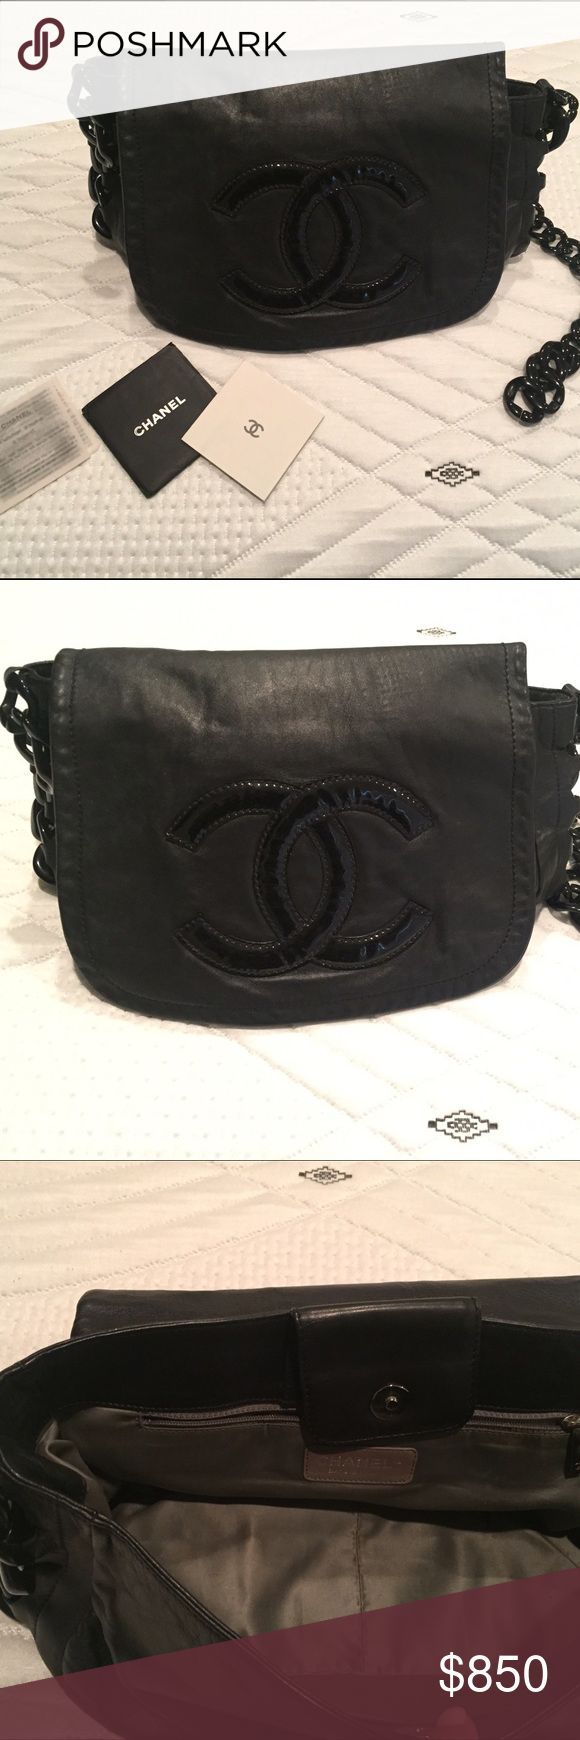 CHANEL :: Authentic Black Lambskin Leather Purse NO TRADES - This beautiful Chanel Resin Modern Chain Lambskin purse is classy and playful. It features a resin chain link strap and trim details, patent interlocking CC design at the front and black and silver-tone hardware accents. **Chain link collapsed and I never got around to taking it in to repair. ** Other than the strap, it is in GREAT condition. Opens to a grey satin-lined interior with zipped pocket and slip pockets perfect for…